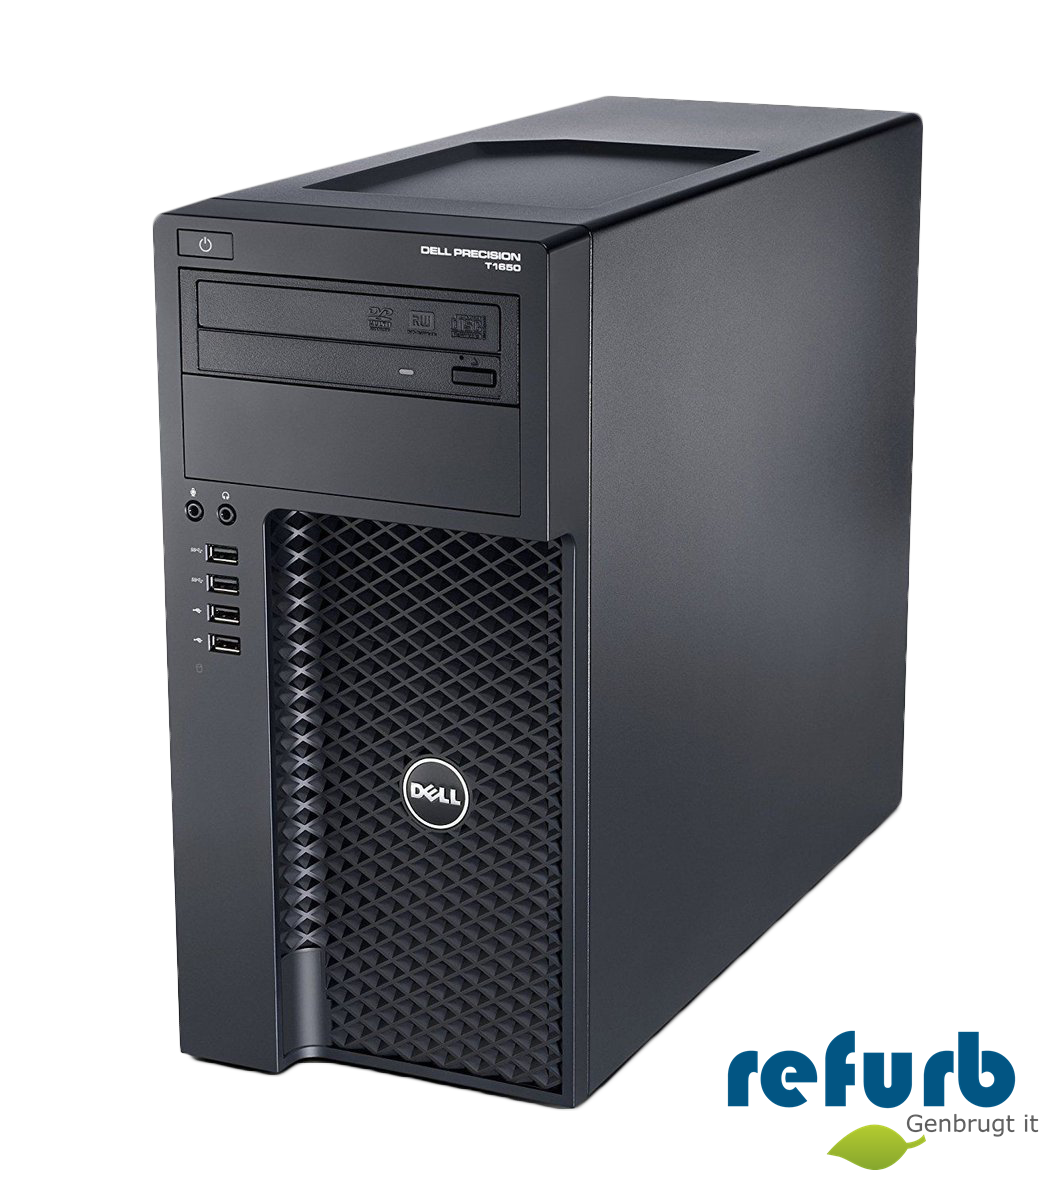 Dell precision t1650 mt fra Dell fra refurb